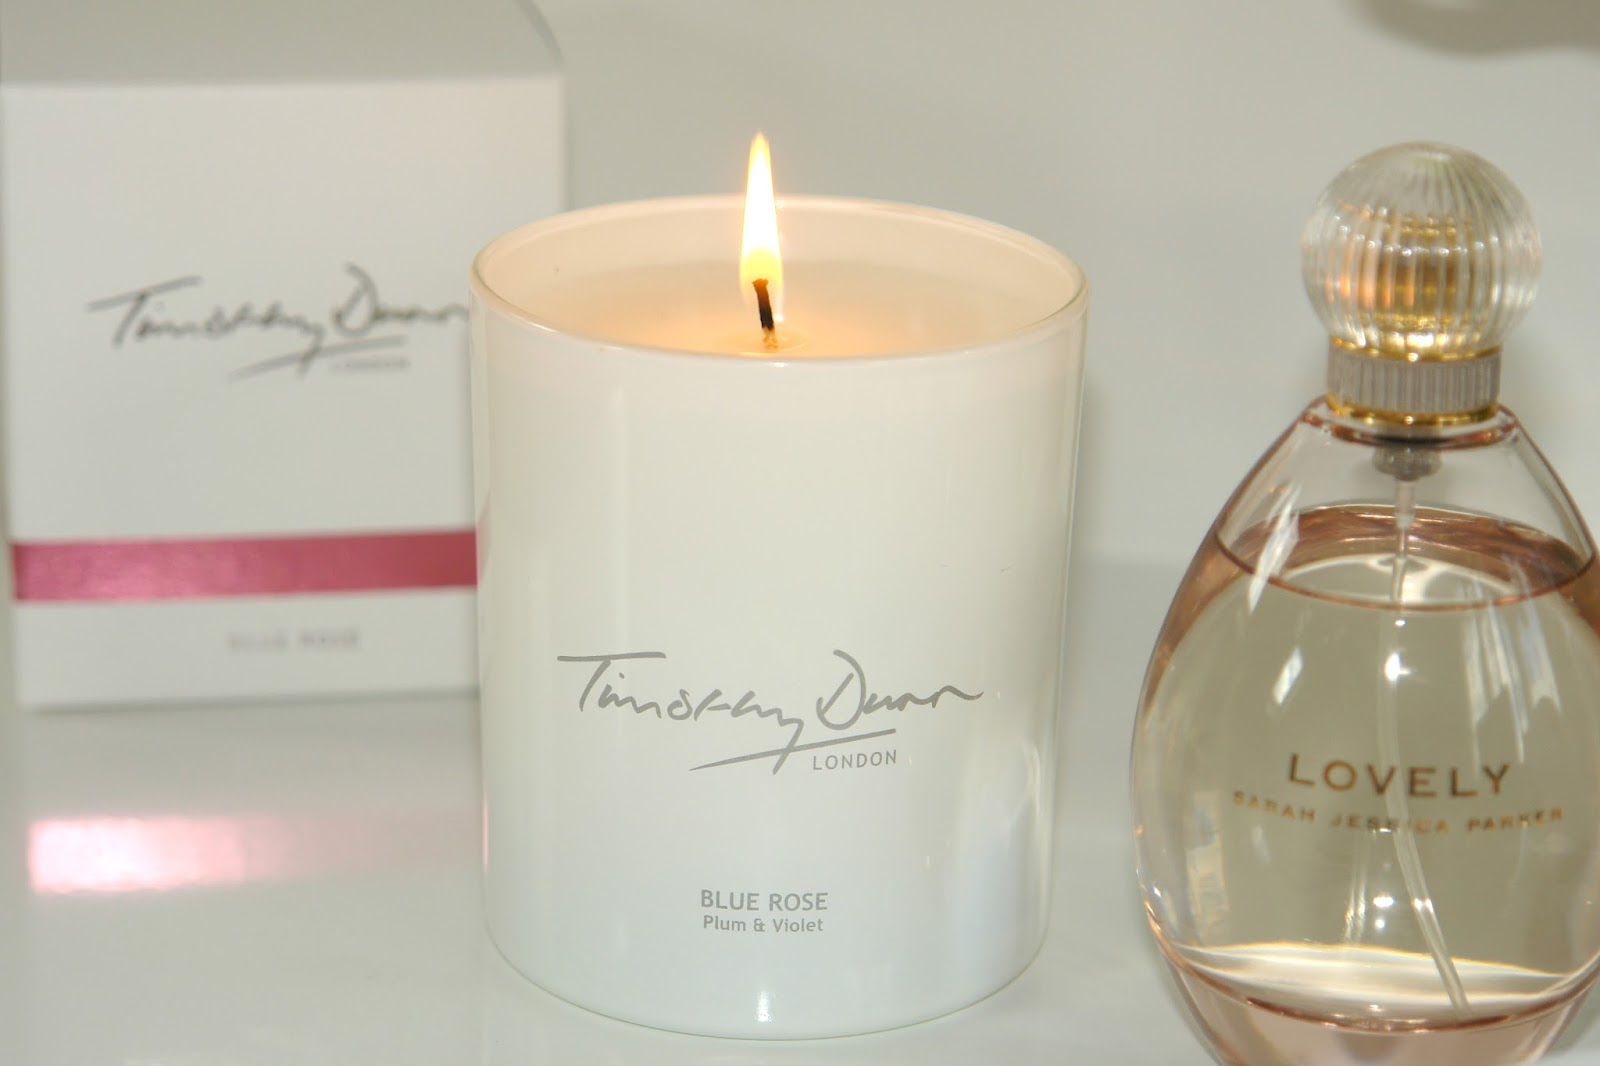 Few of my recent favourite things,  Timothy Dunn Blue Rose candle, review, Accessorize, candles, earrings, flowers, jewellery, perfume, Sarah Jessica Parker, Timothy Dunn,